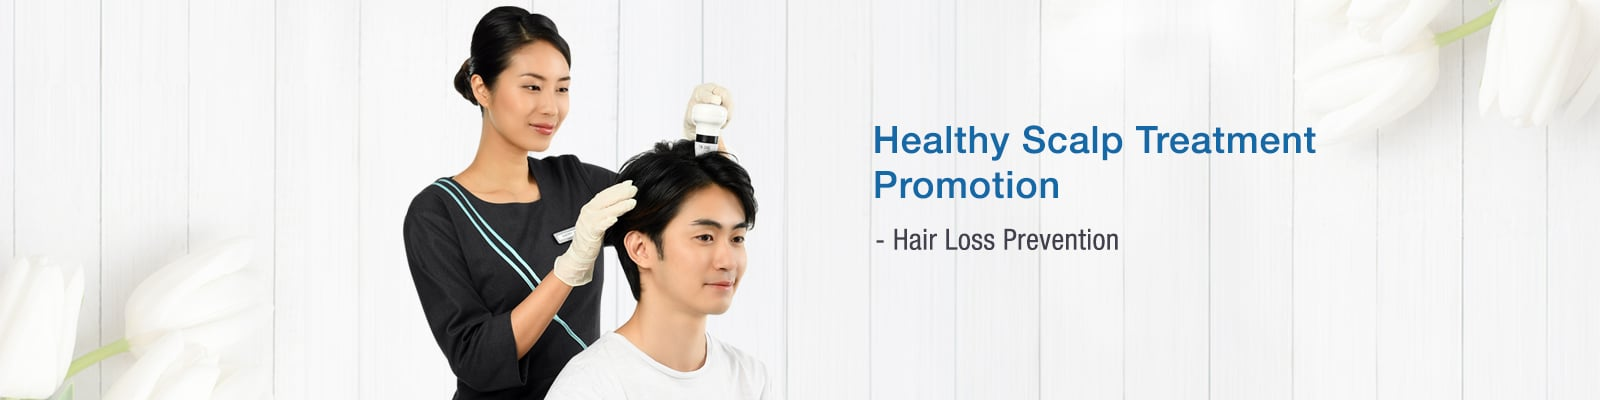 Healthy Scalp Treatment Promotion